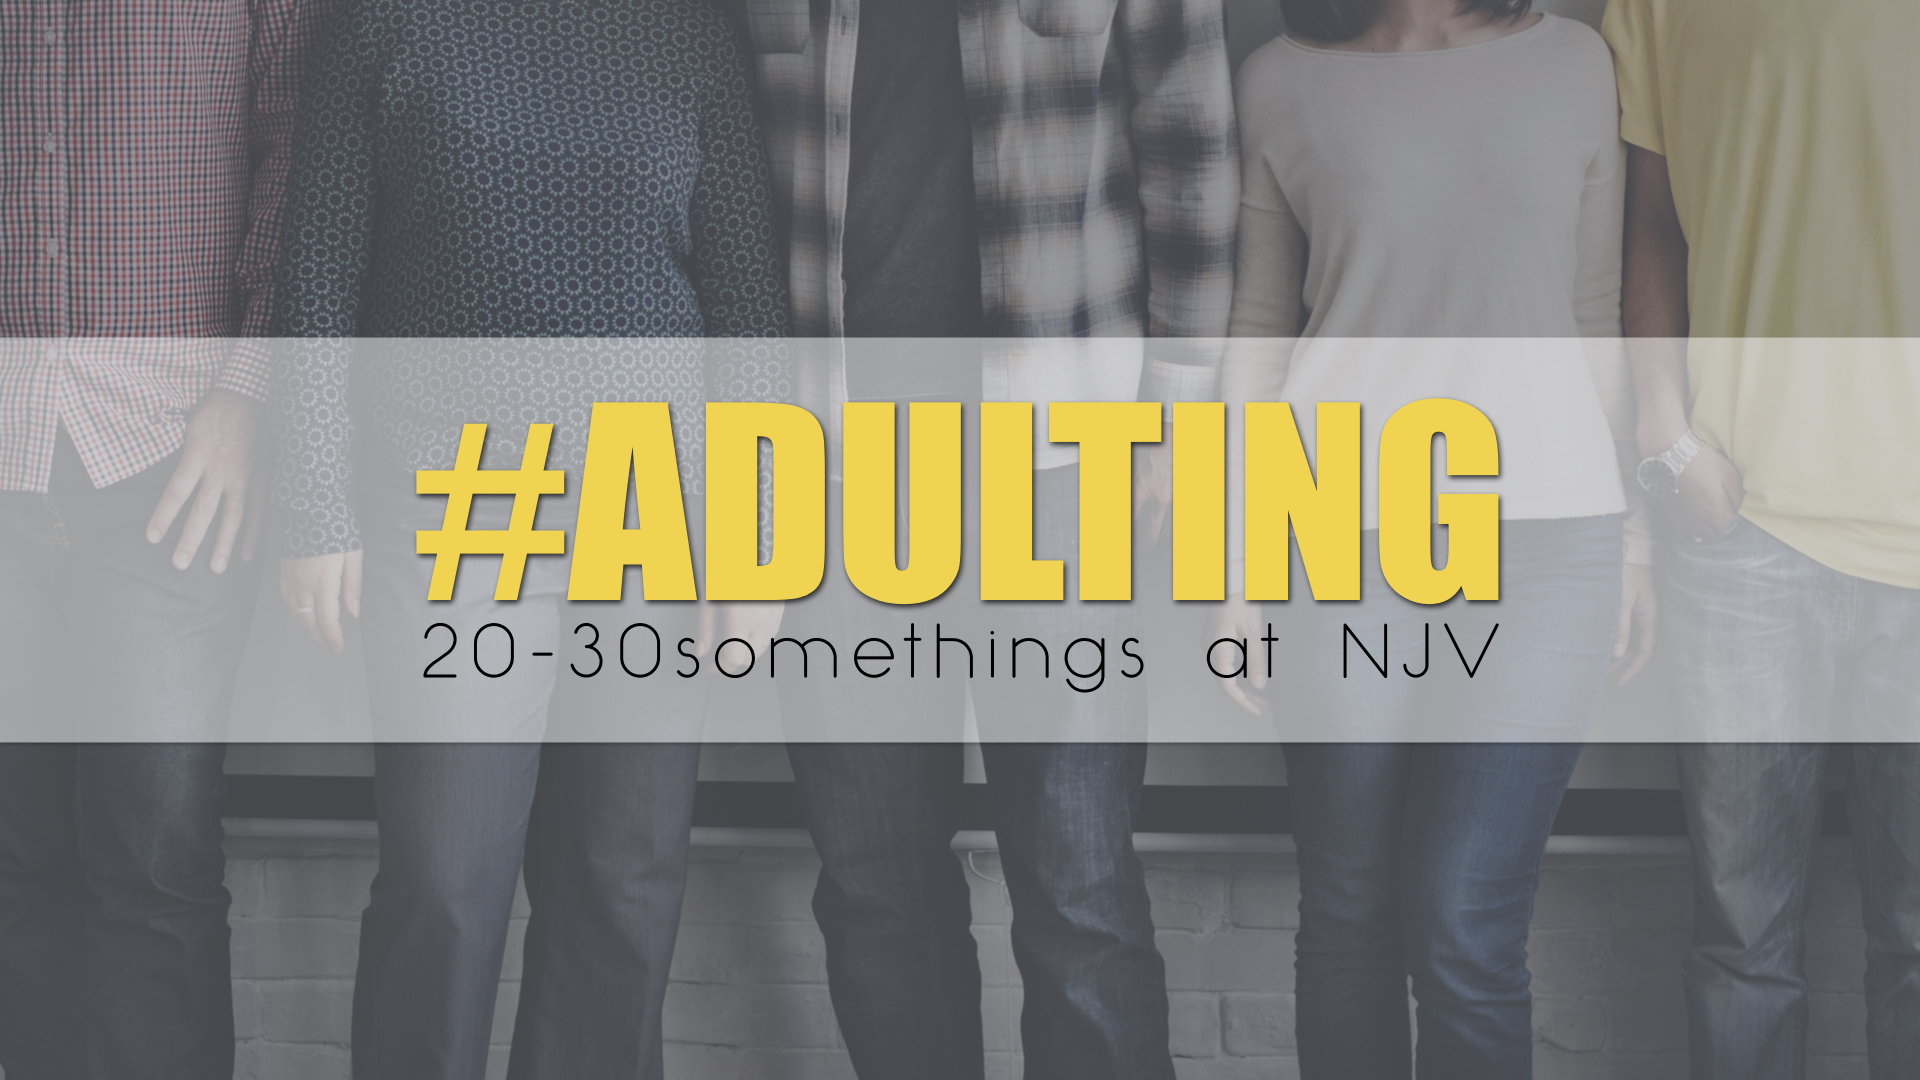 #NJVineAdulting // follow us on Instagram! @njvineadulting